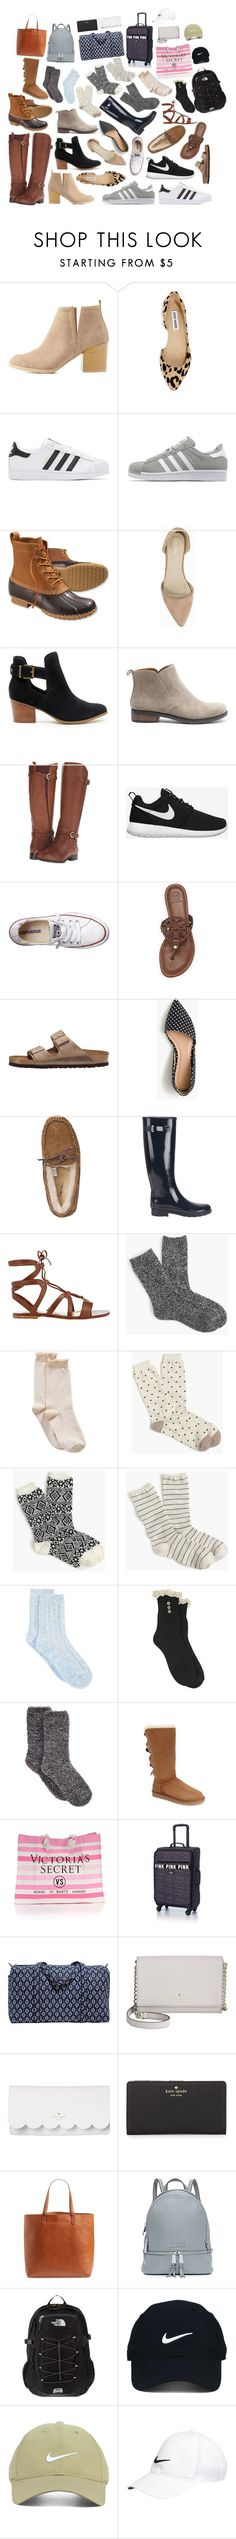 """shoes, socks, bags, hats"" by thatprepsterlibby ❤ liked on Polyvore featuring Charlotte Russe, Steve Madden, adidas Originals, L.L.Bean, Nly Shoes, Sole Society, Lucky Brand, Naturalizer, NIKE and Converse"